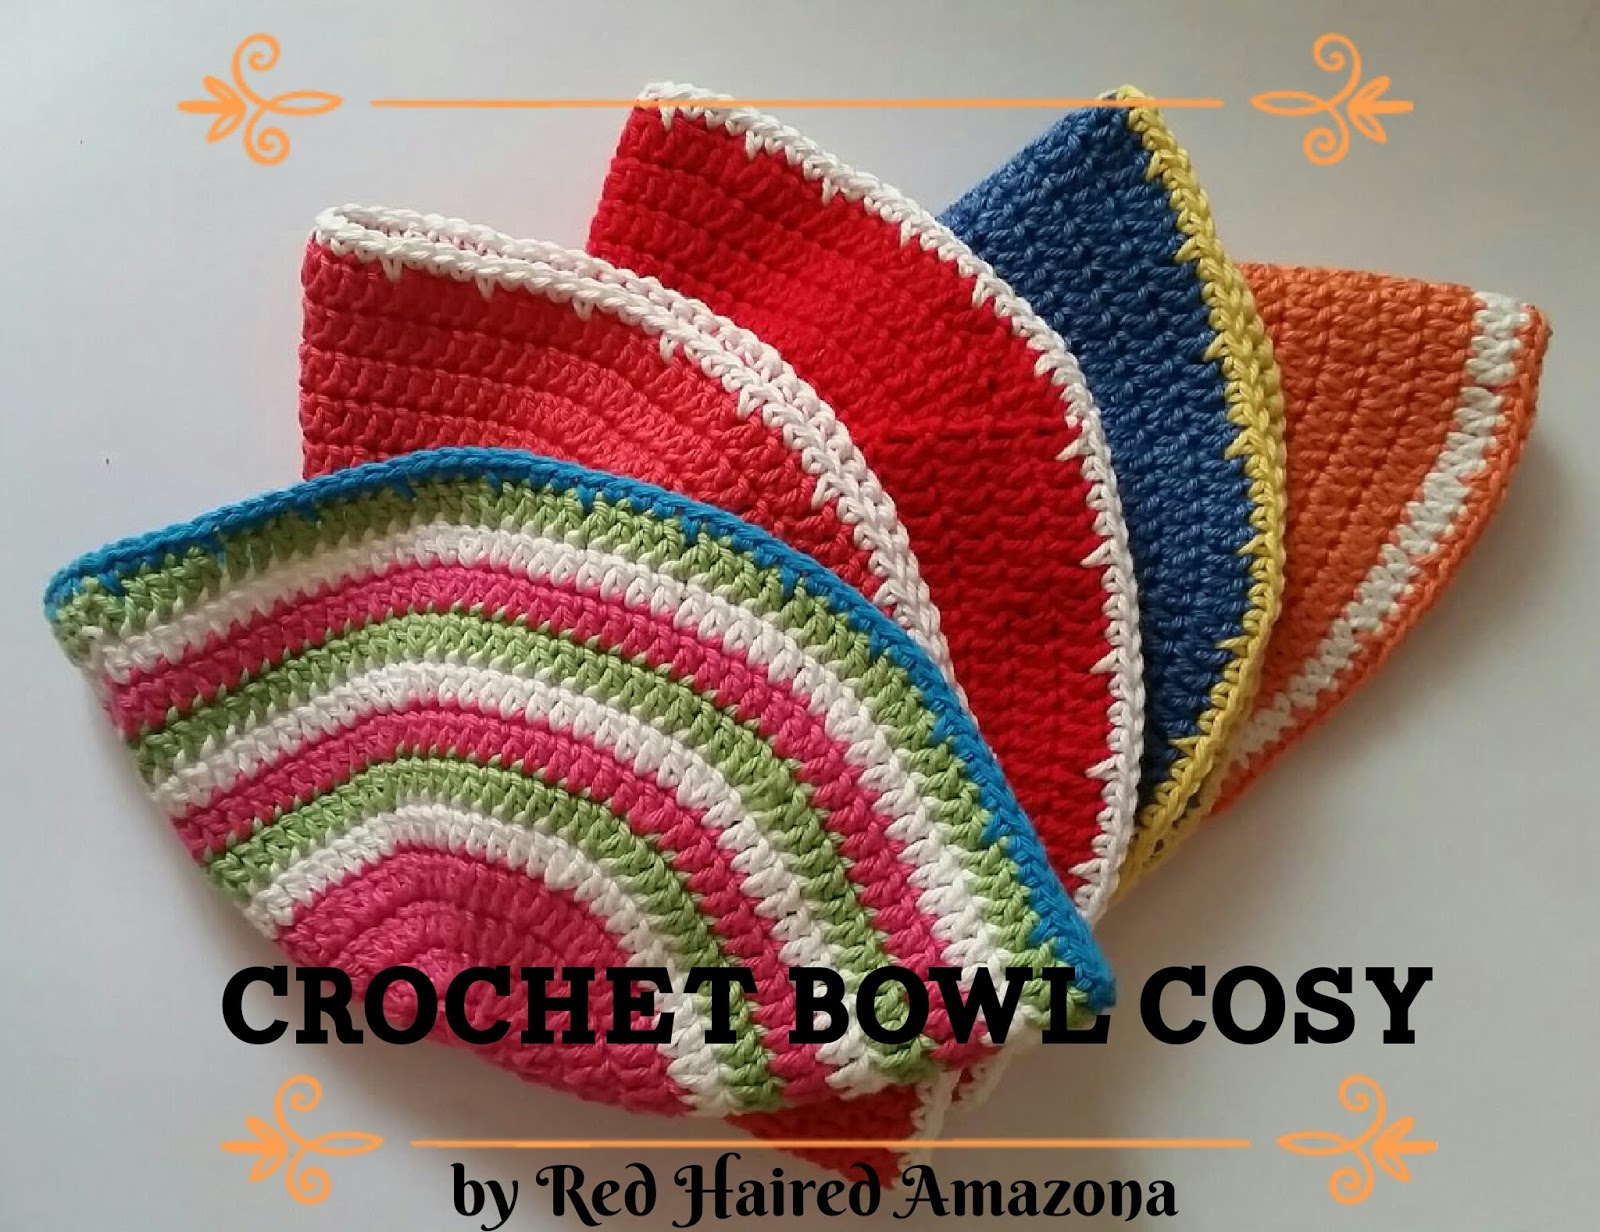 Crochet Patterns On Amazon : crochet cotton bowl cosy microwave red haired amazona